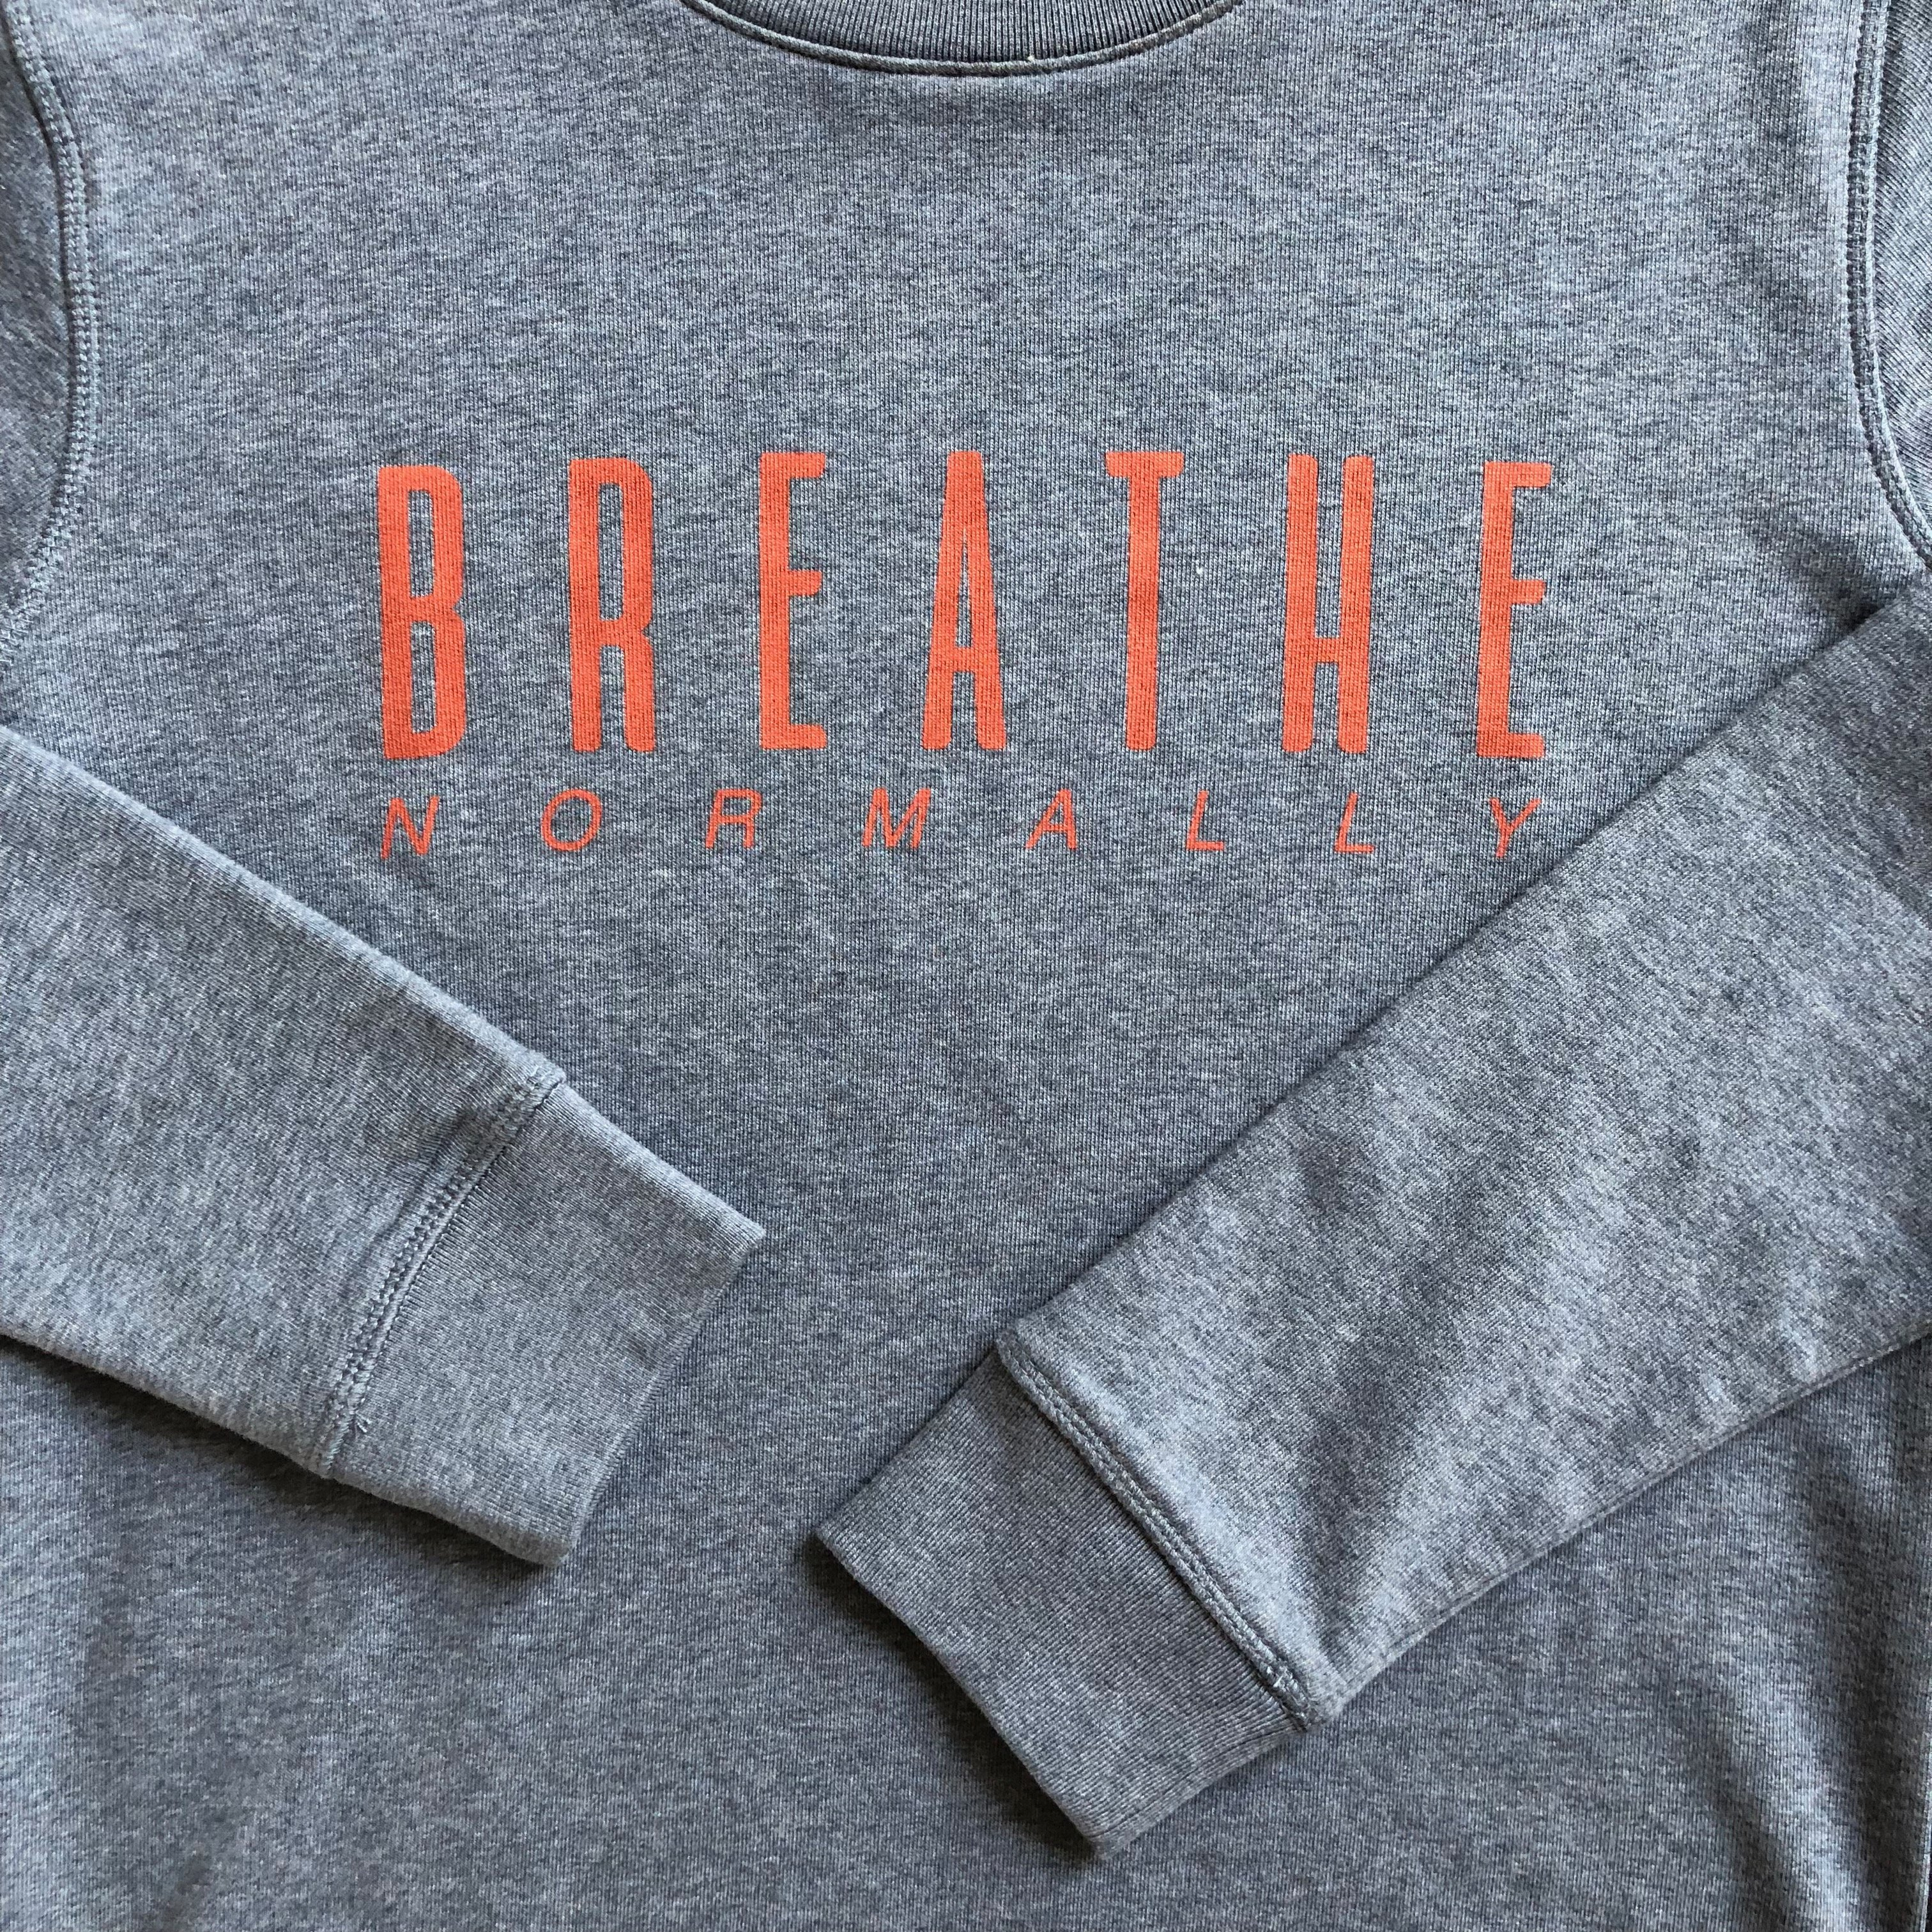 Unisex SWEATER, Breathe Normally from RITTRSHAUS